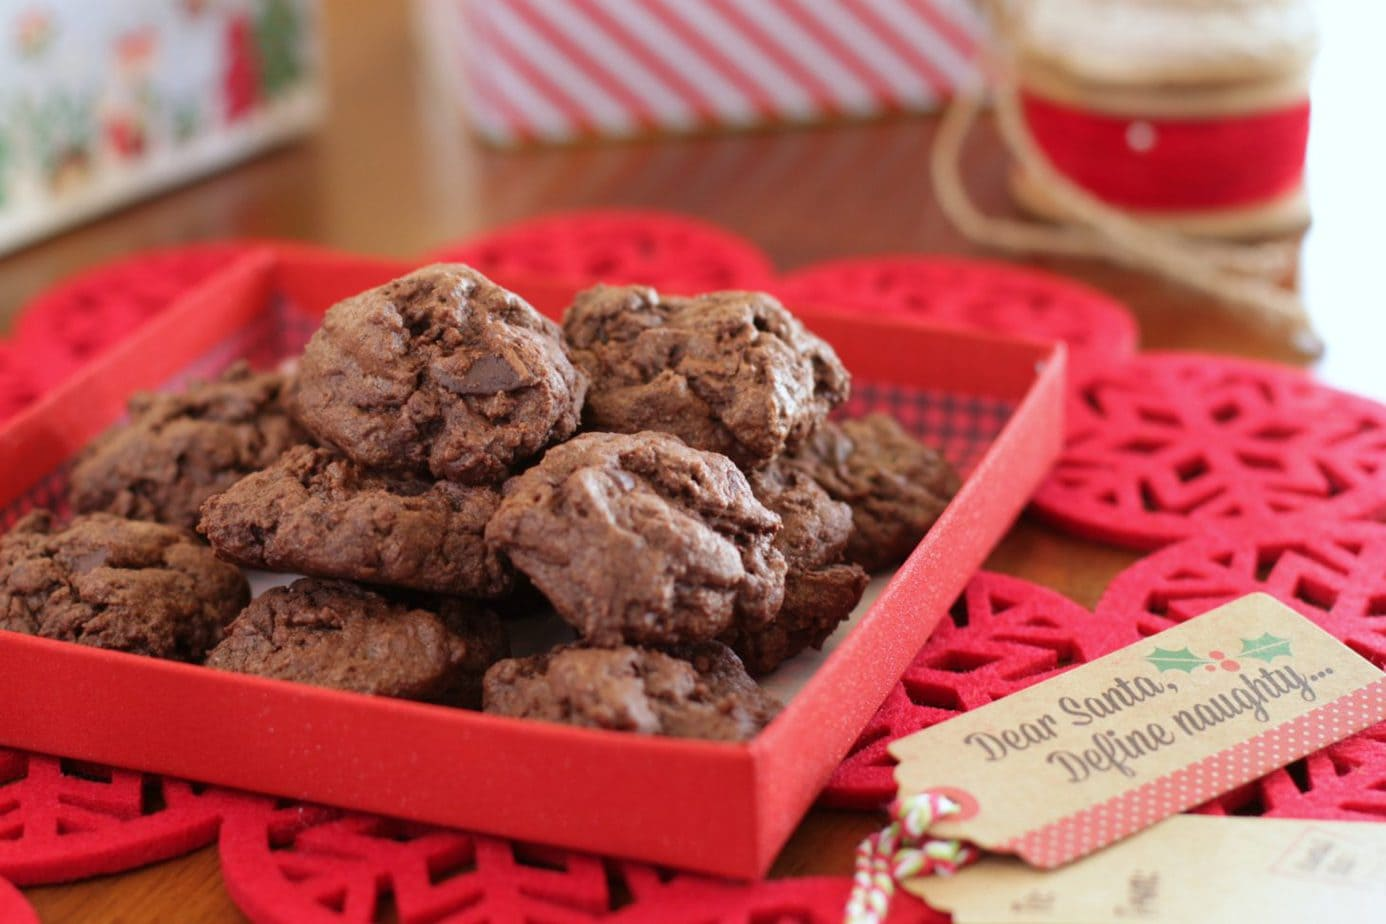 Ancho Chili Chocolate Cookies Pinterest image of brown cookies in a red gift box.